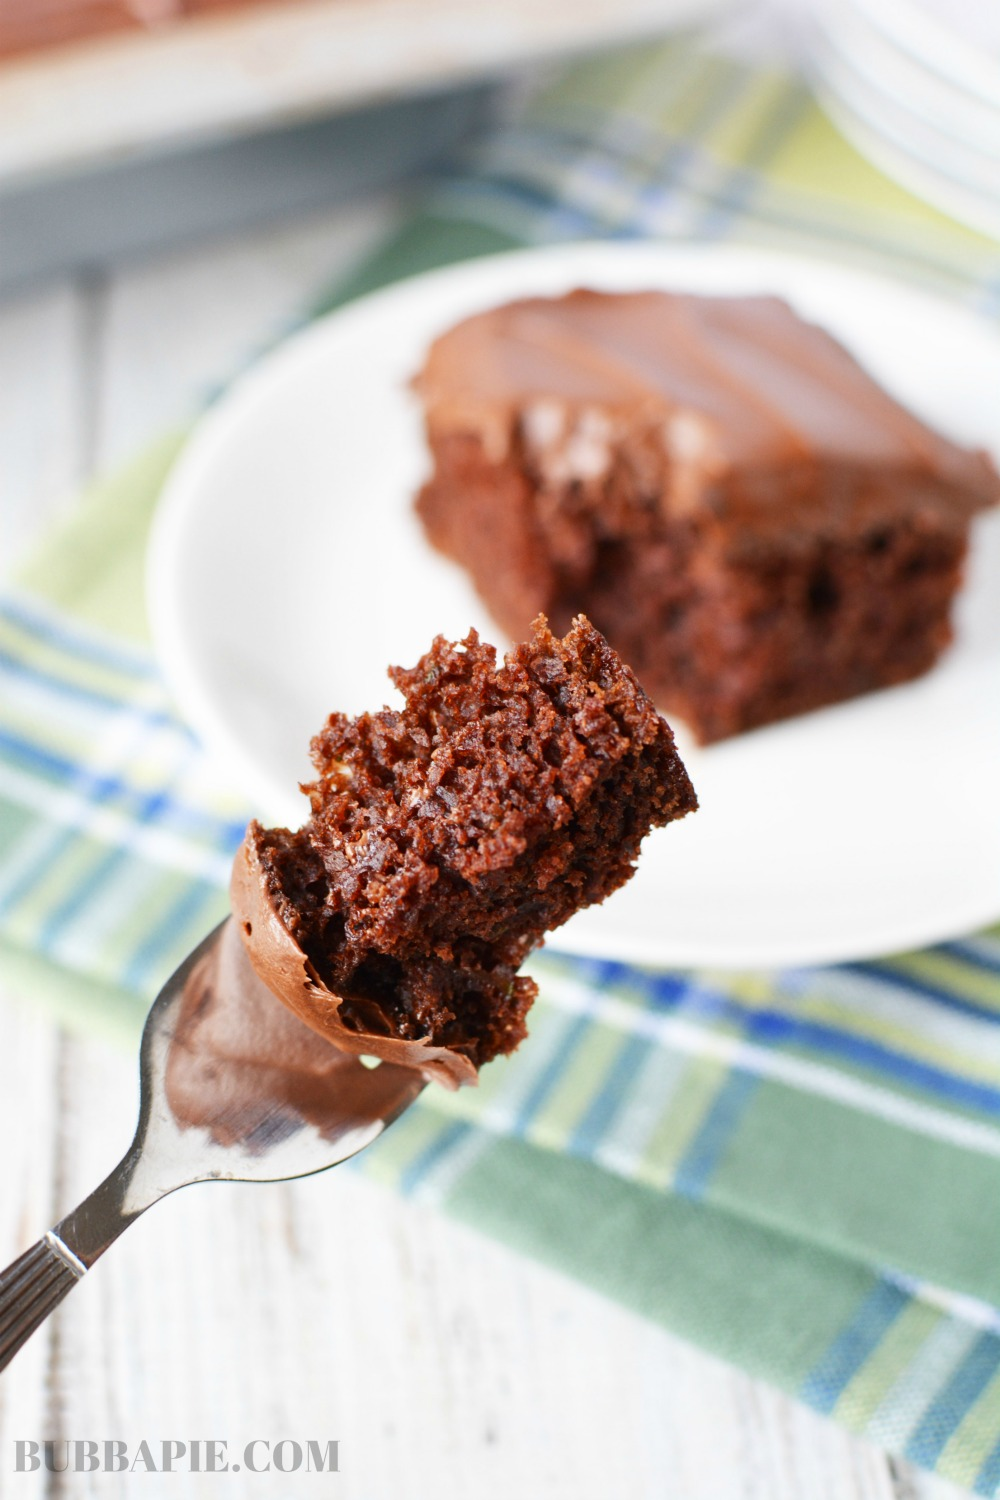 Easy chocolate Zucchini Cake being served on a fork.